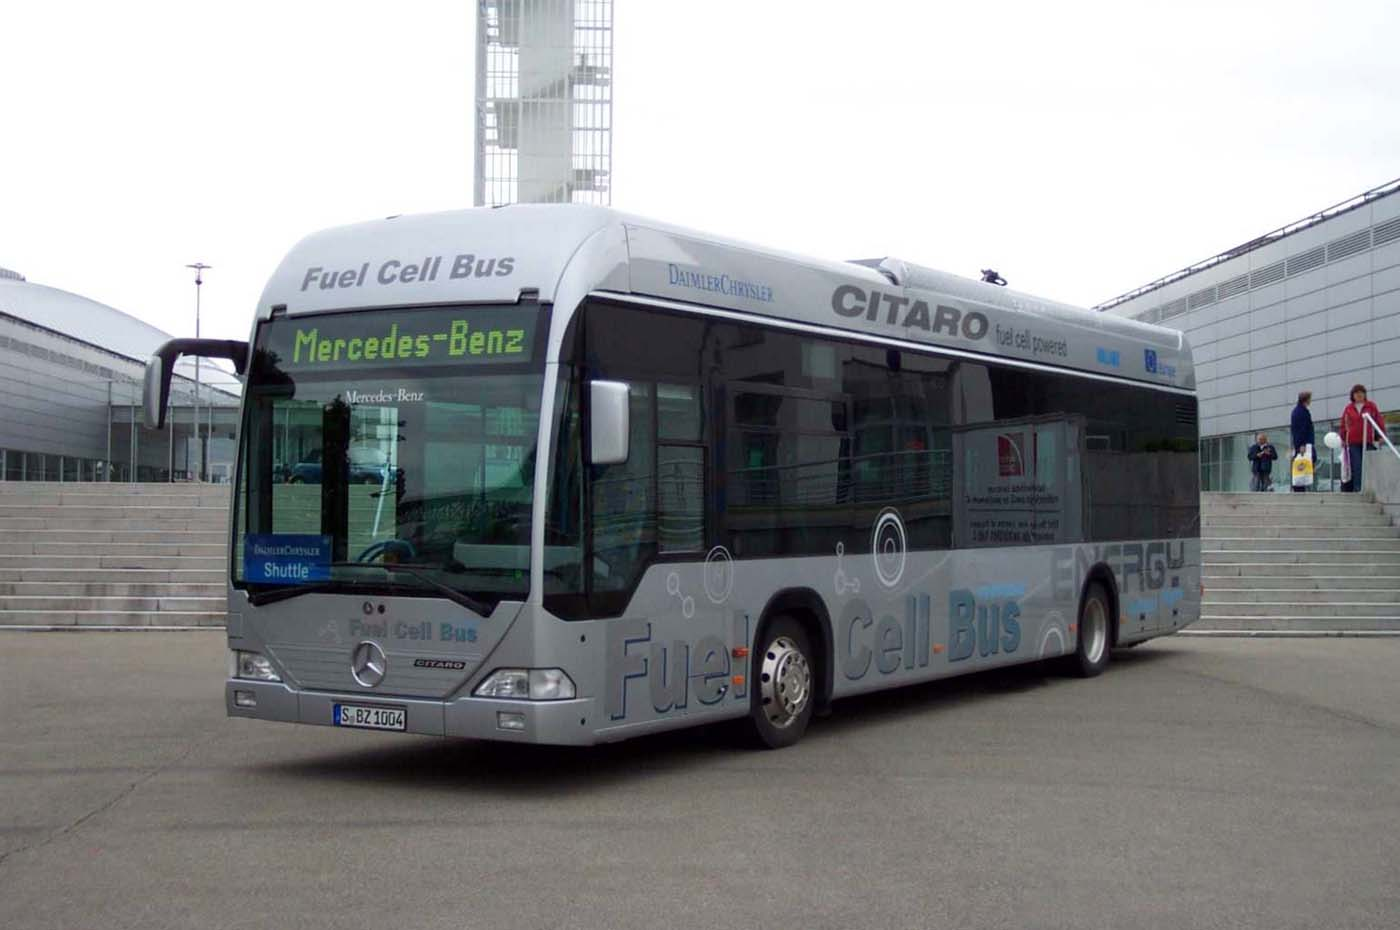 Mercedes-Benz fuel cell bus